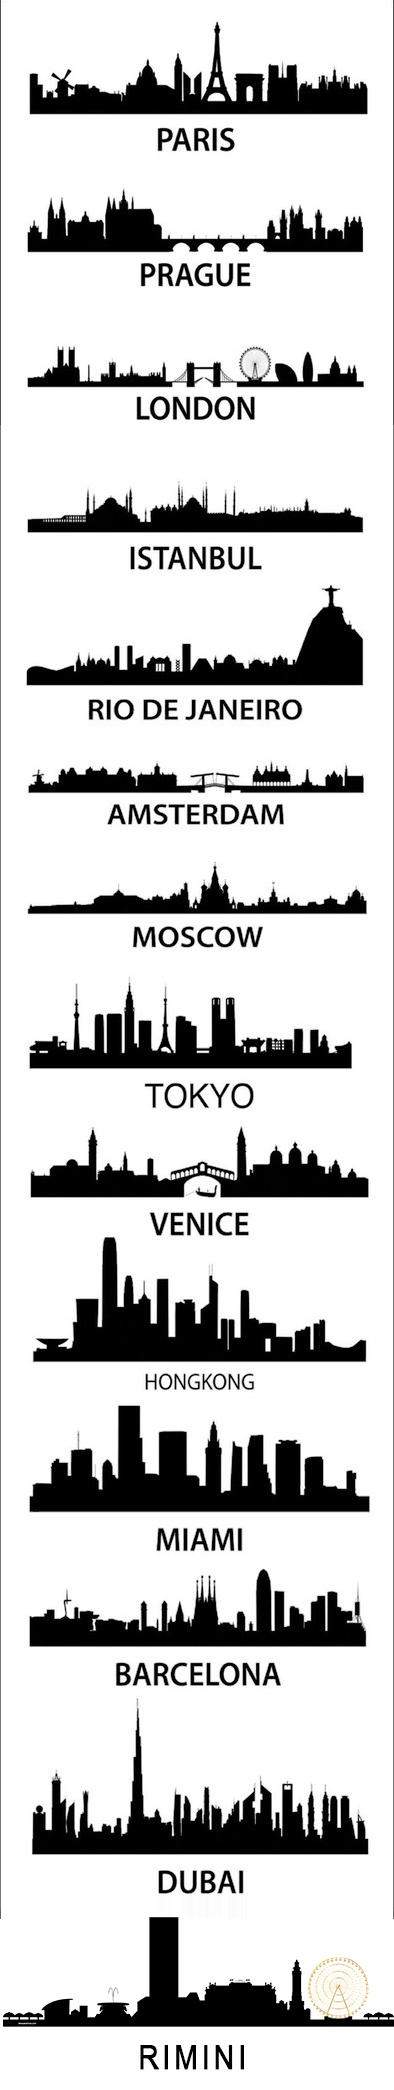 Well, I've made it to 5 of them! More to go. (Although I don't remotely know how Miami got on there instead of NY or Boston or LA or SD or Chicago or....)